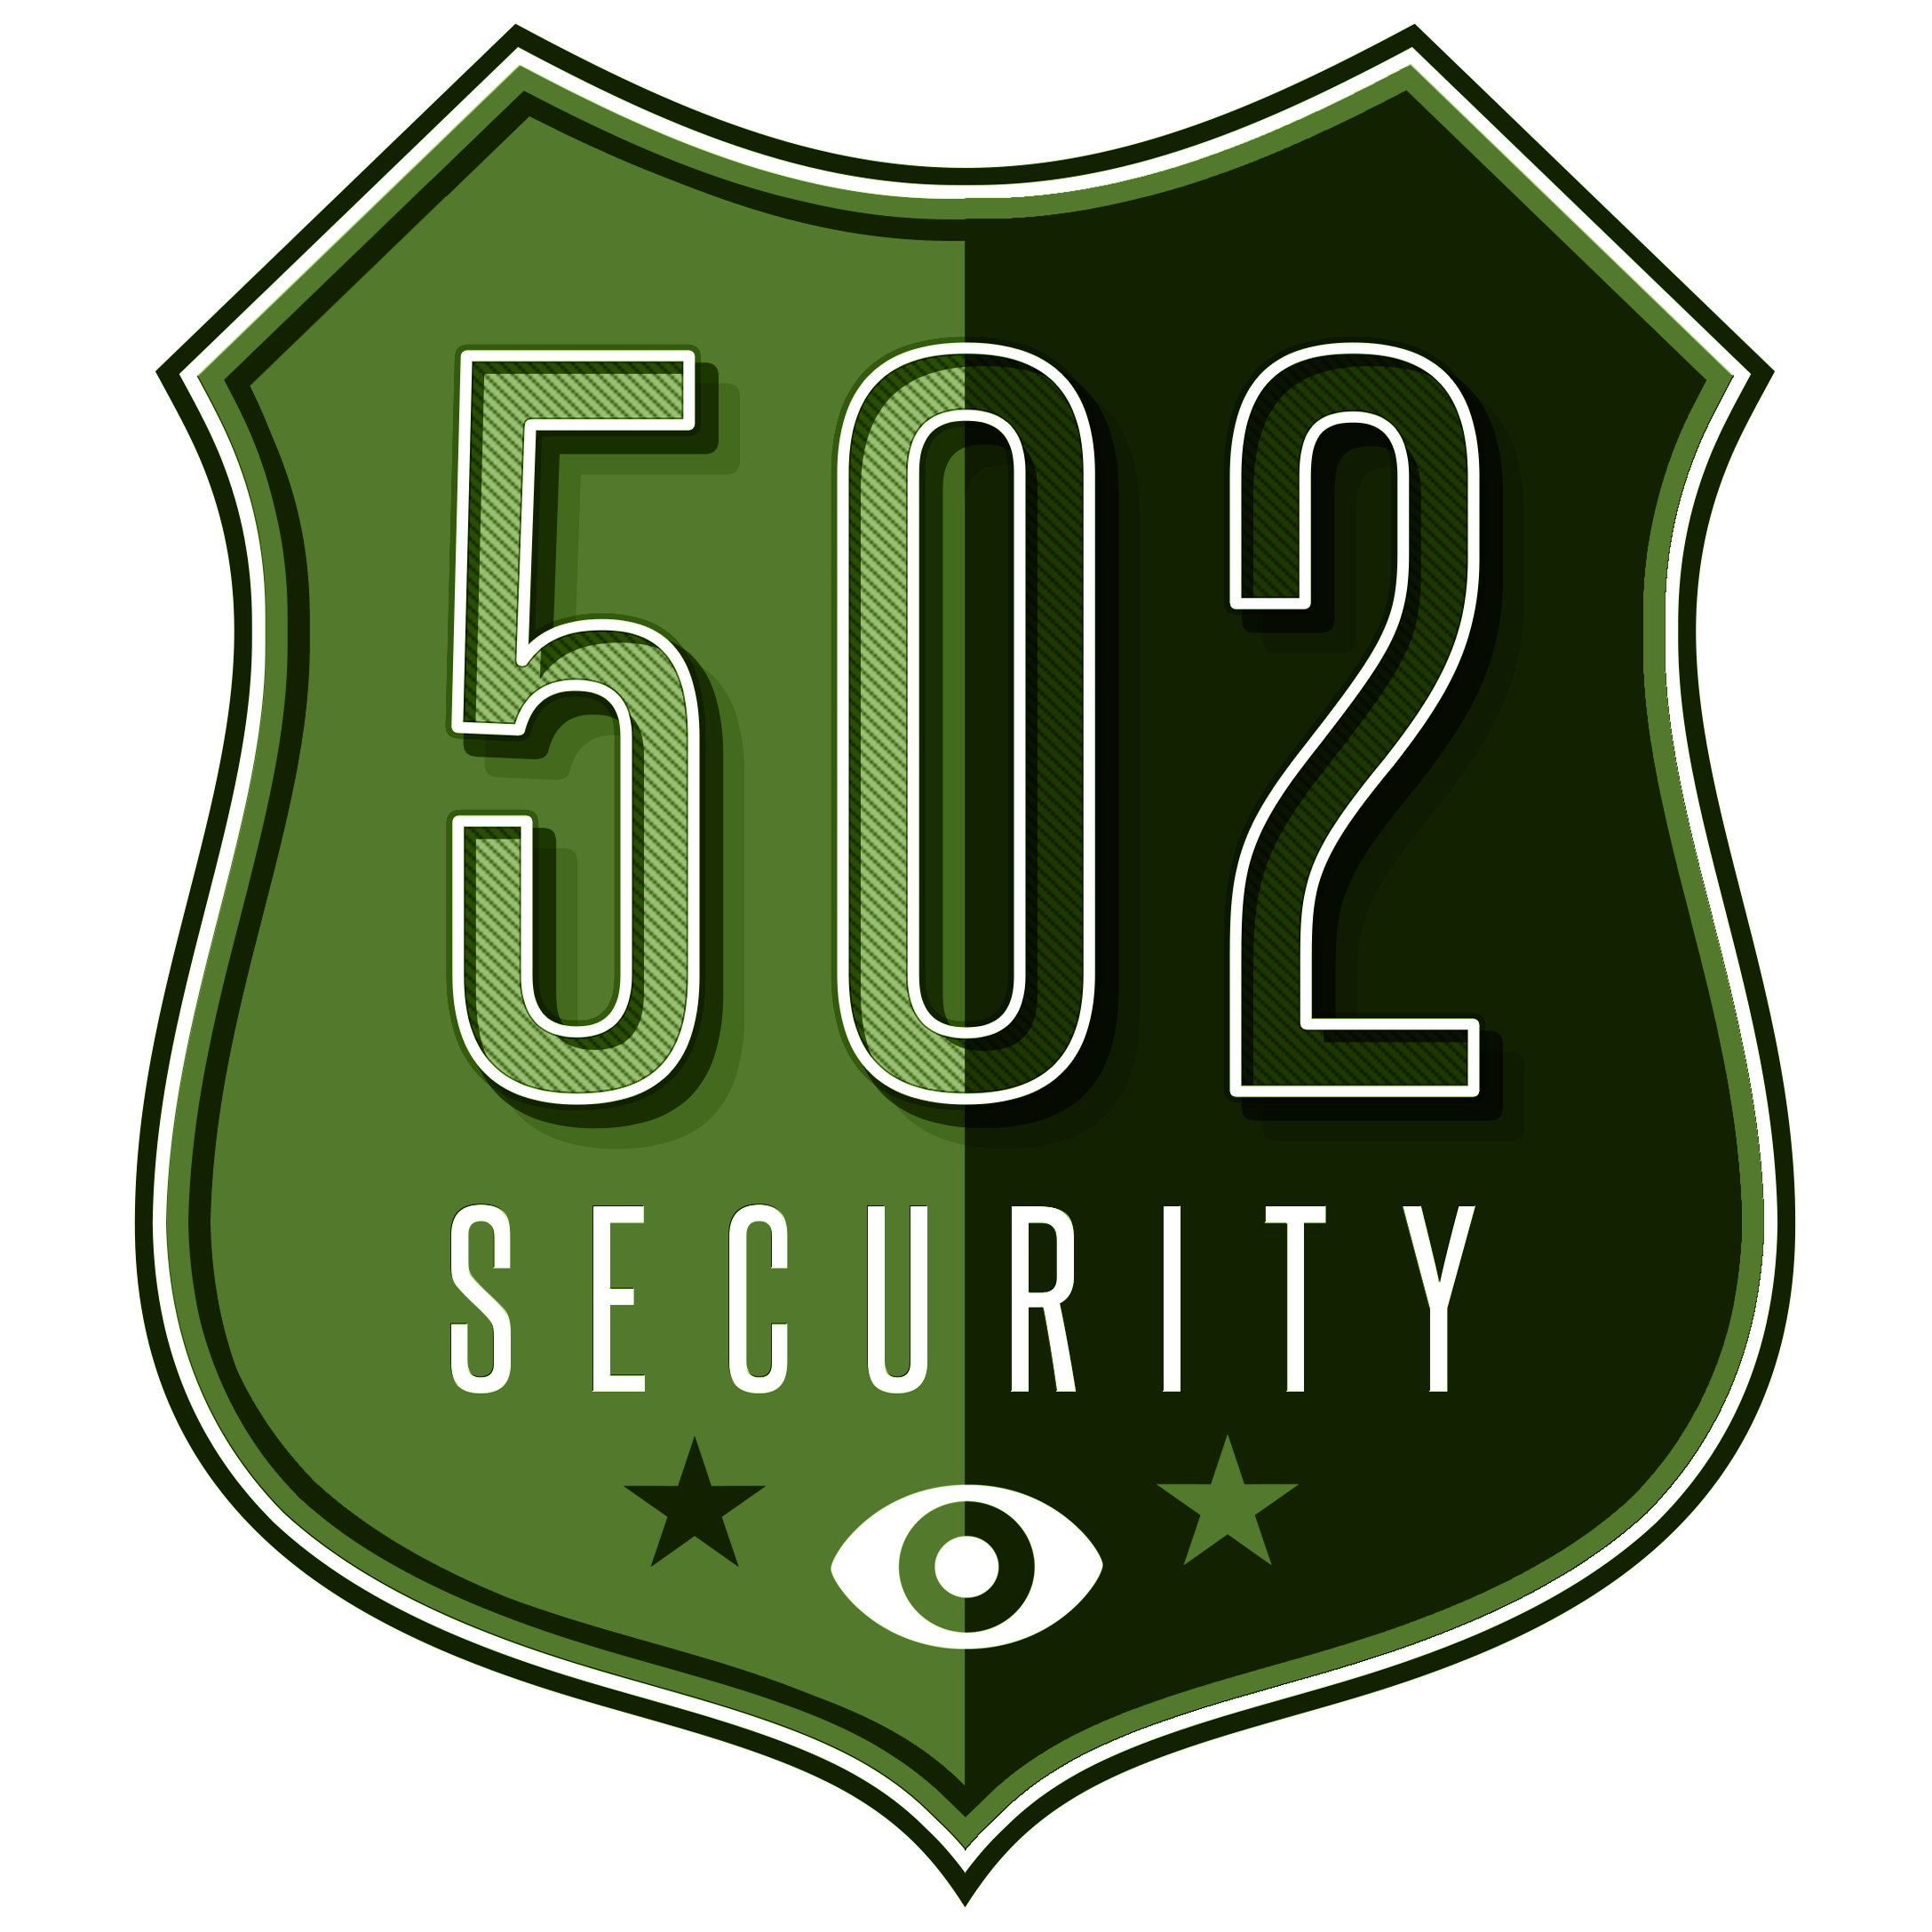 502 Security - ad image